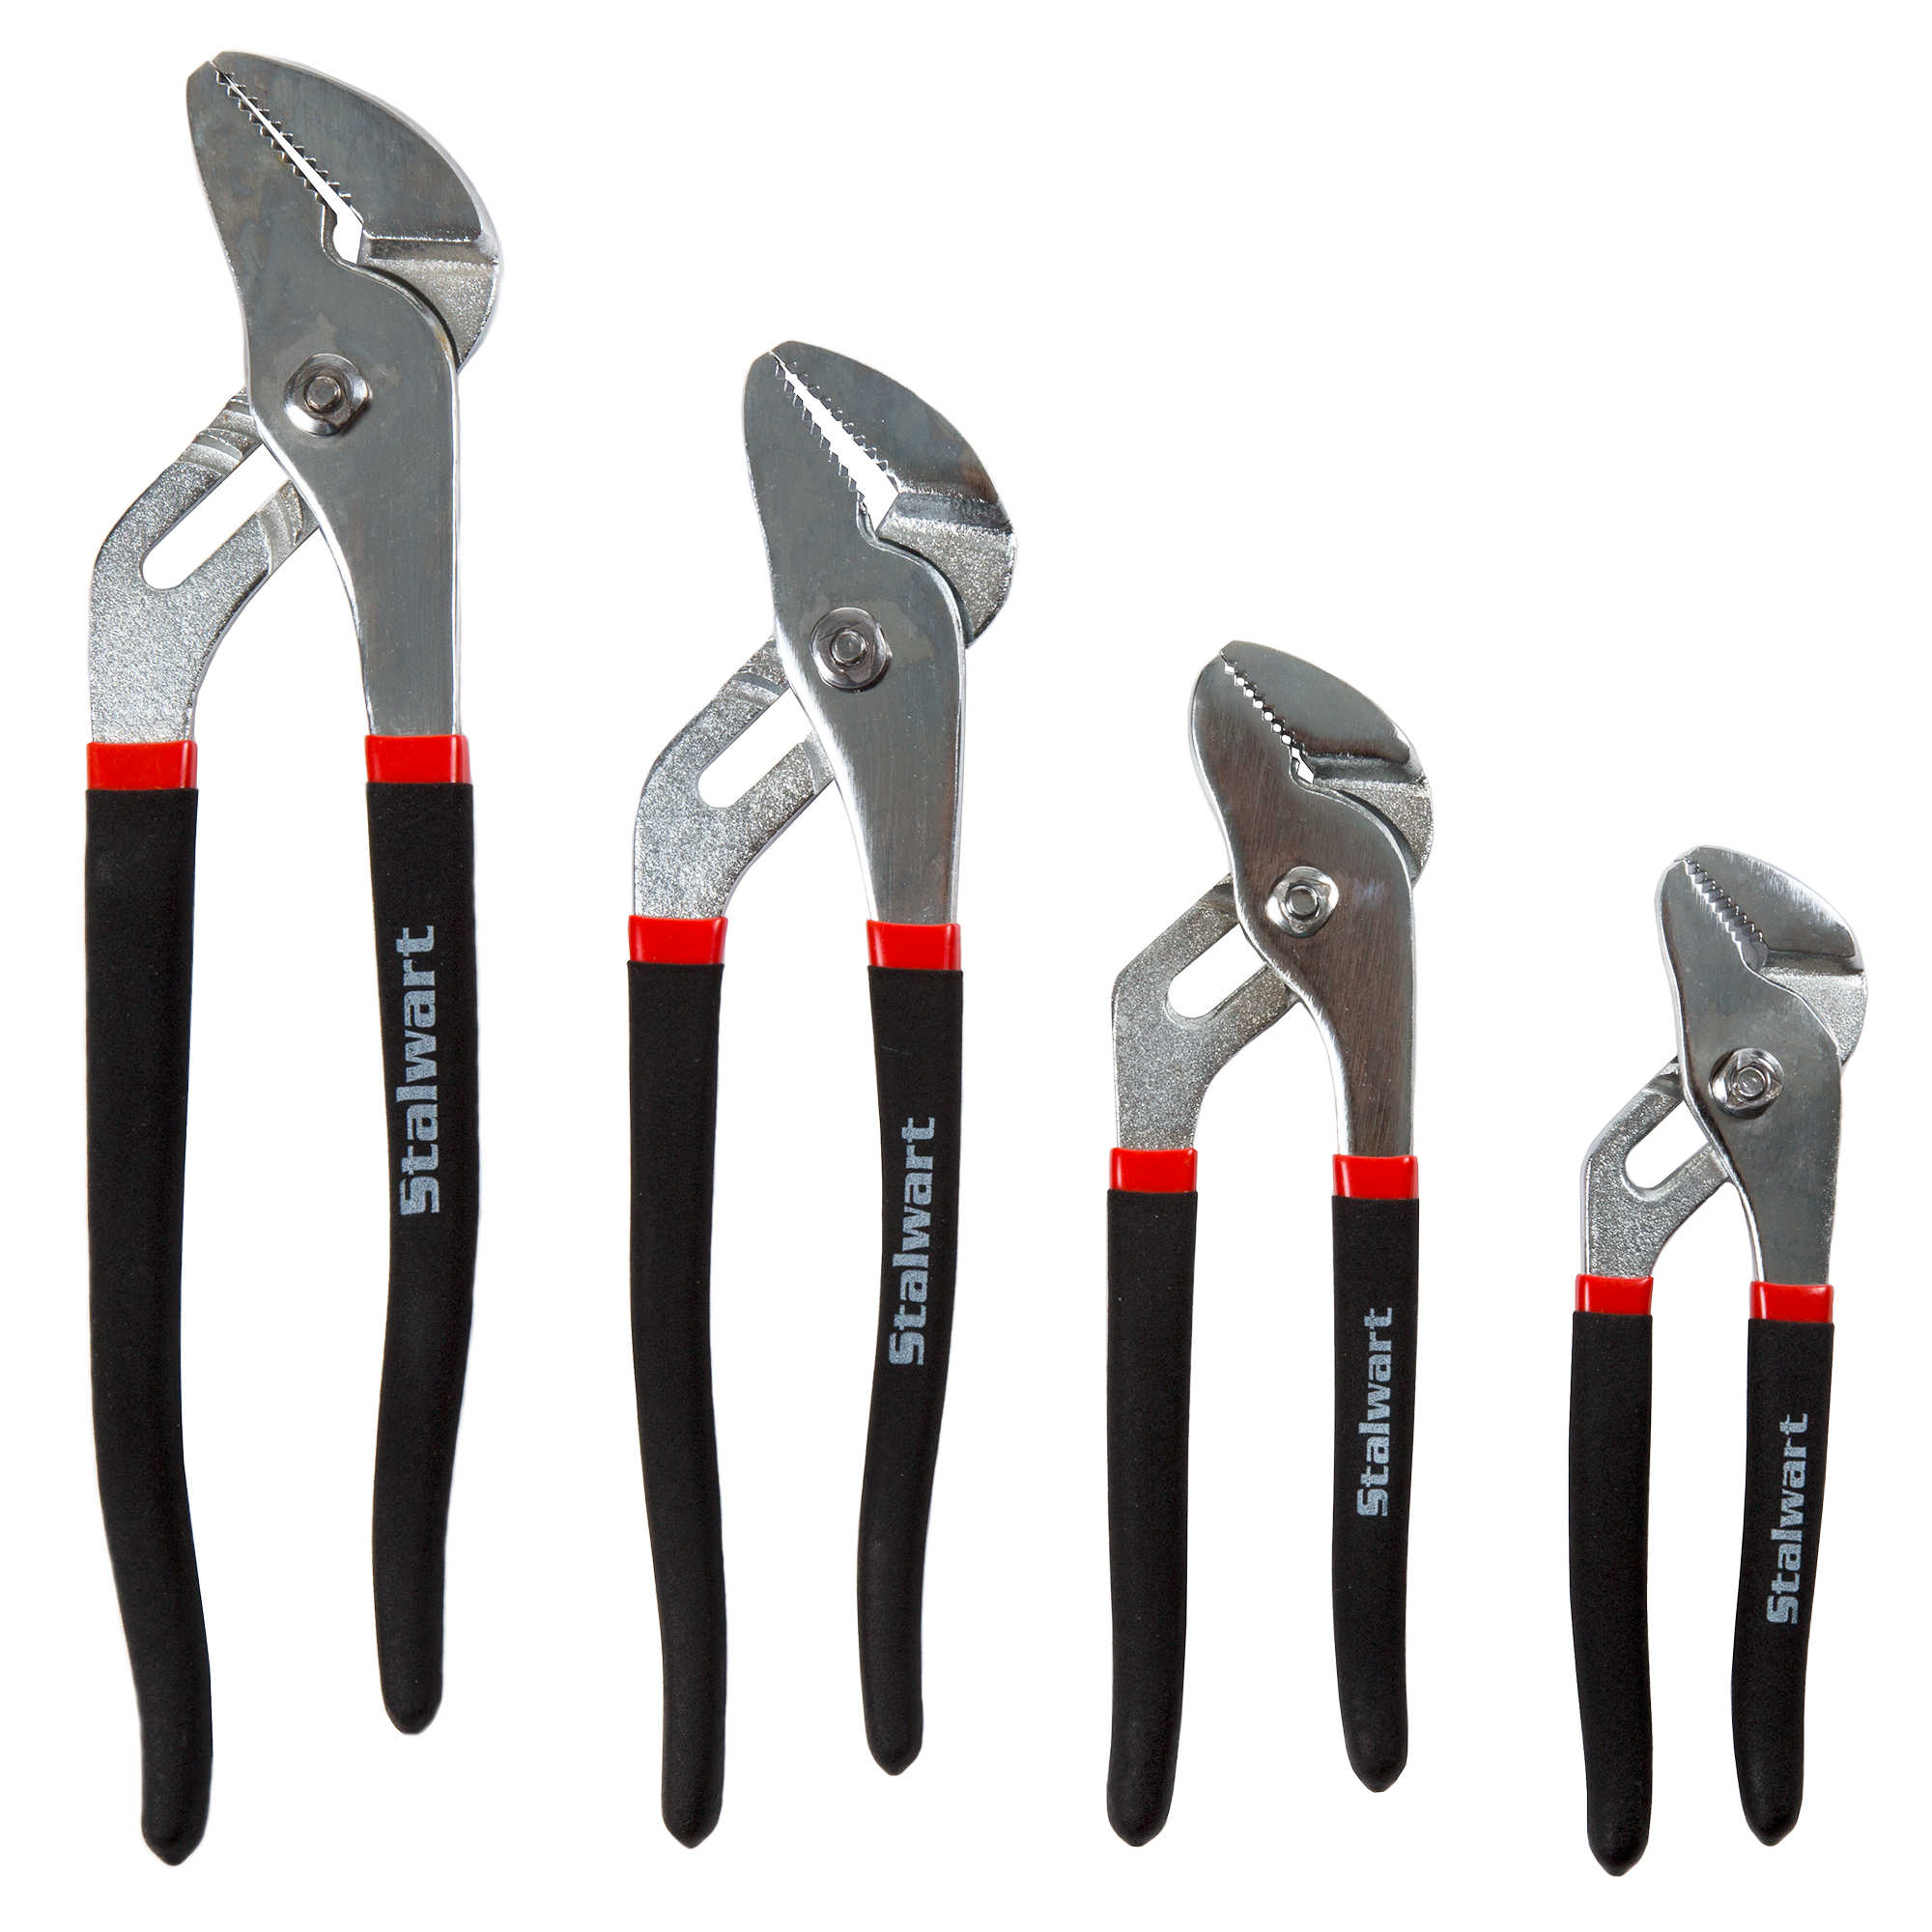 4 PC Groove Joint Plier Set with Storage Pouch by Stalwart